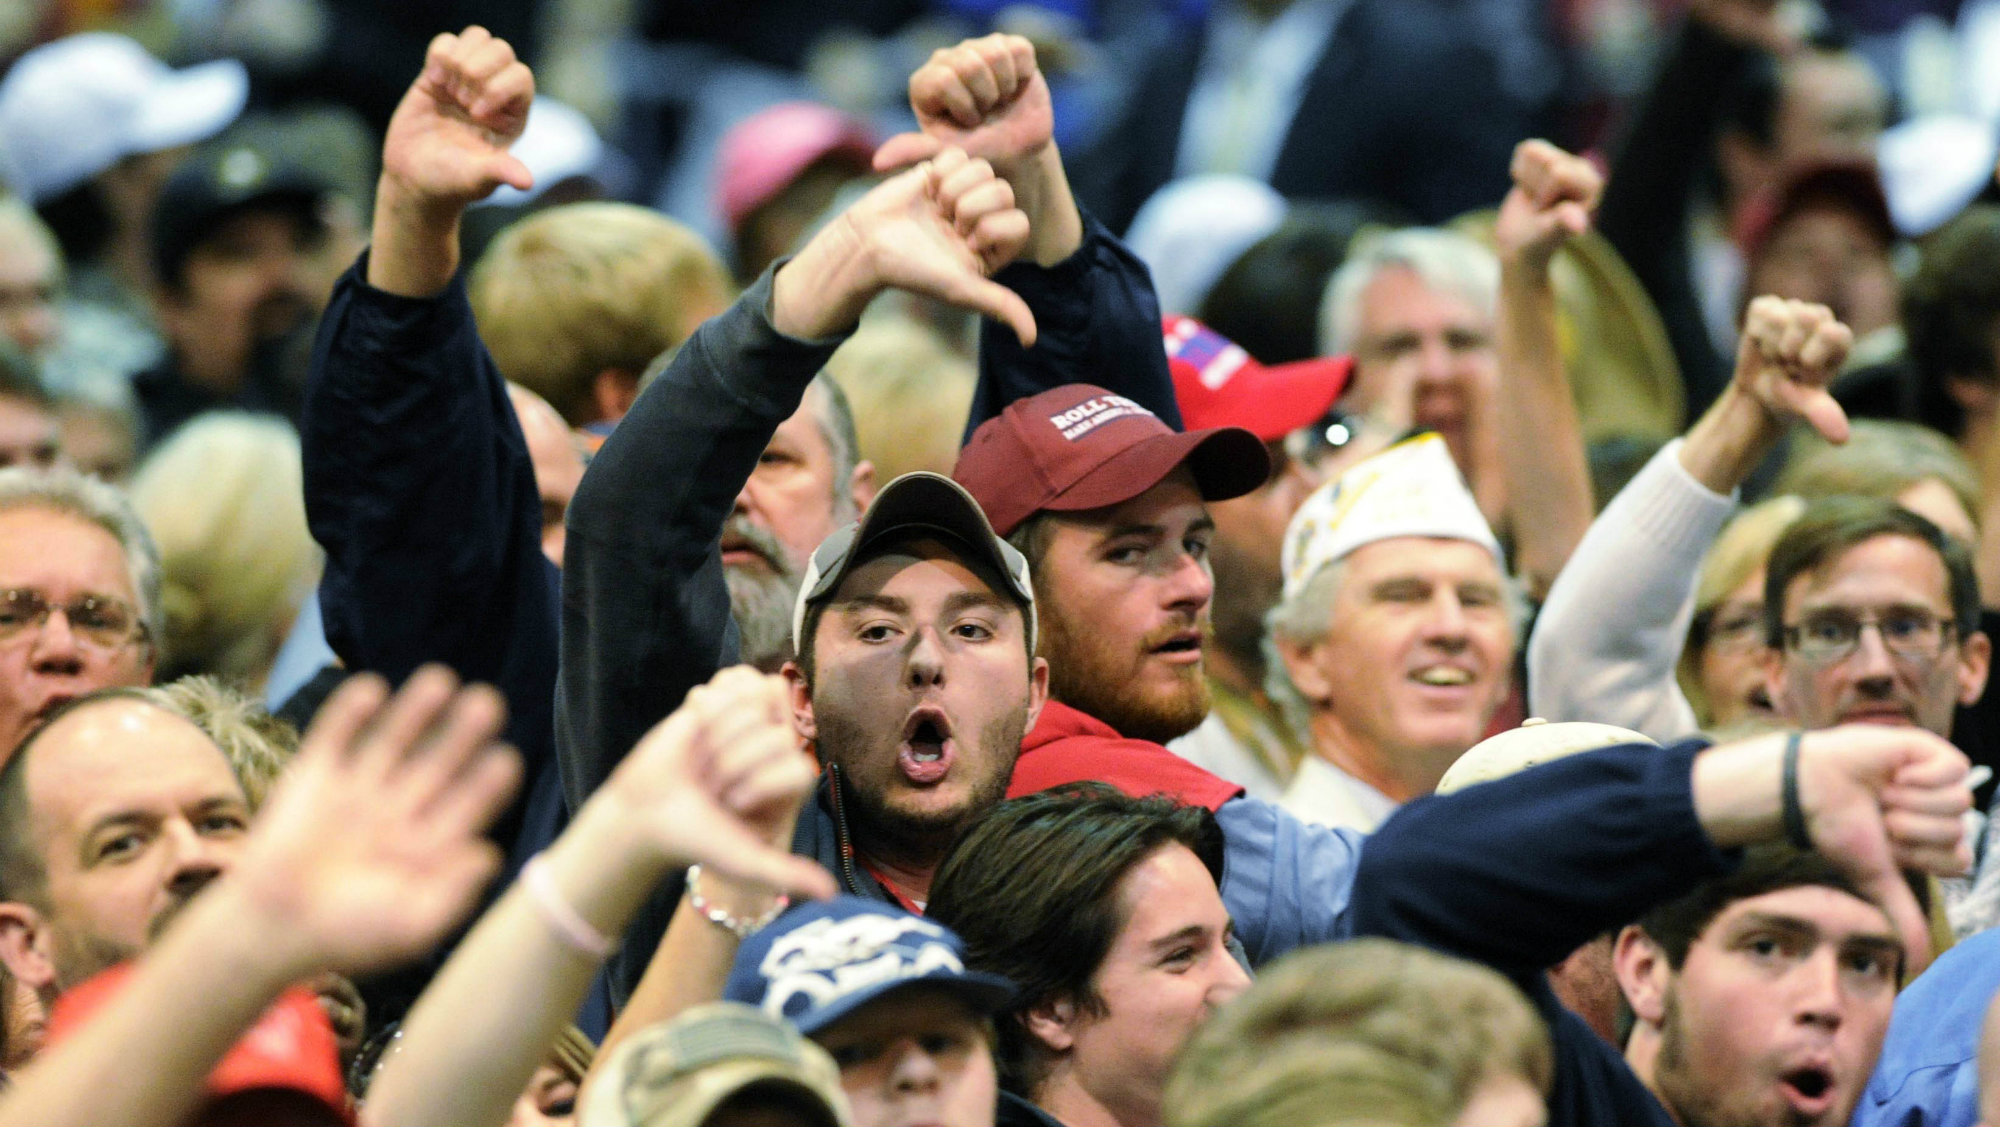 """Trump supporters """"boo"""" the media at a rally."""